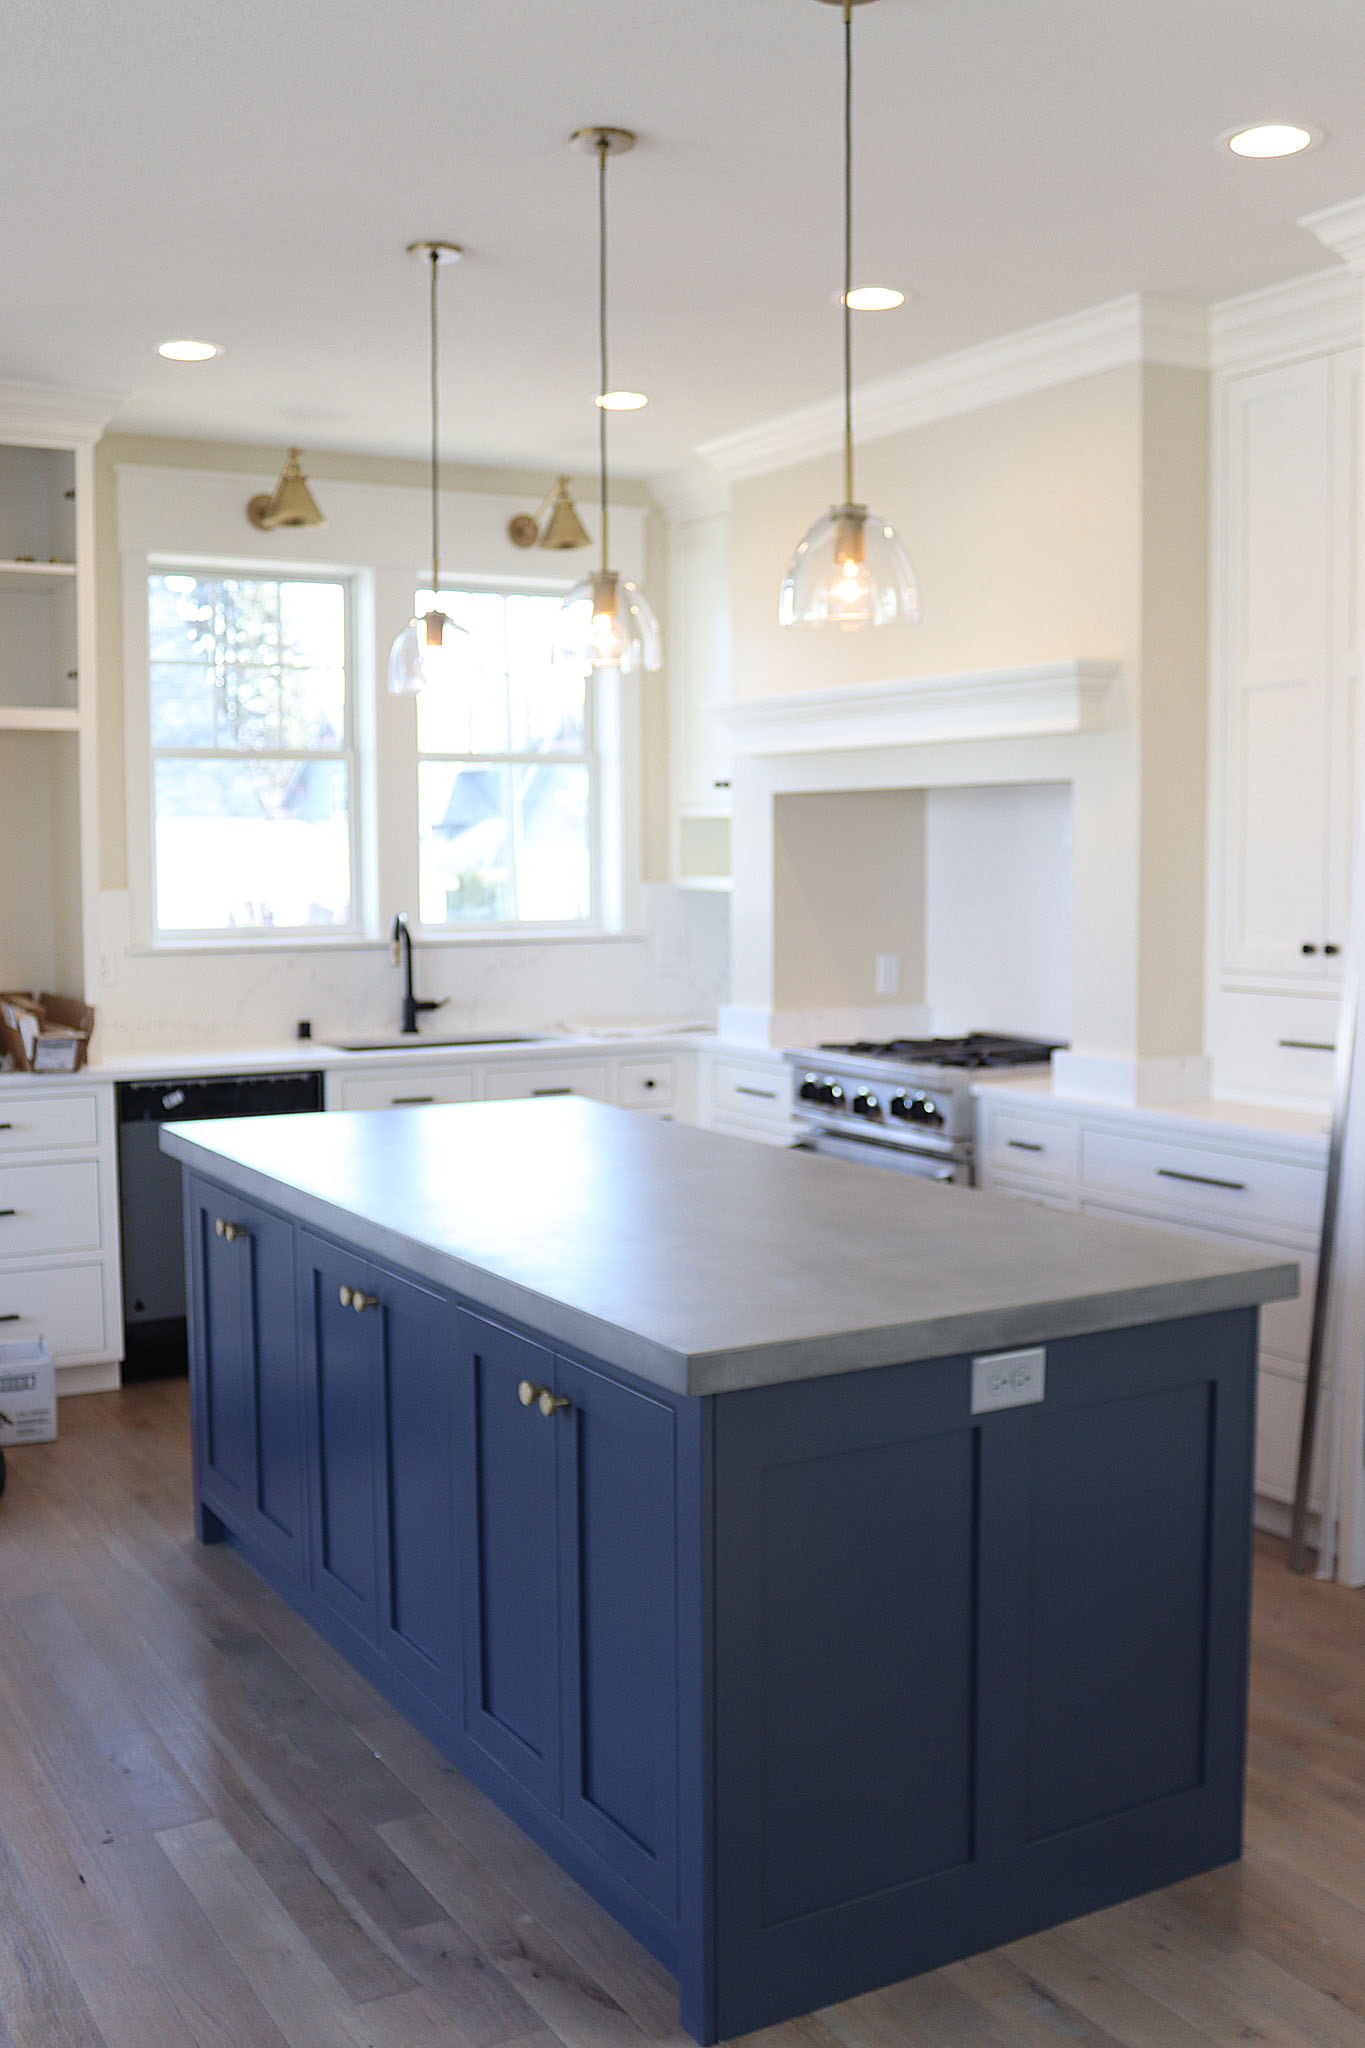 Concrete countertop island with ample cabinet storage